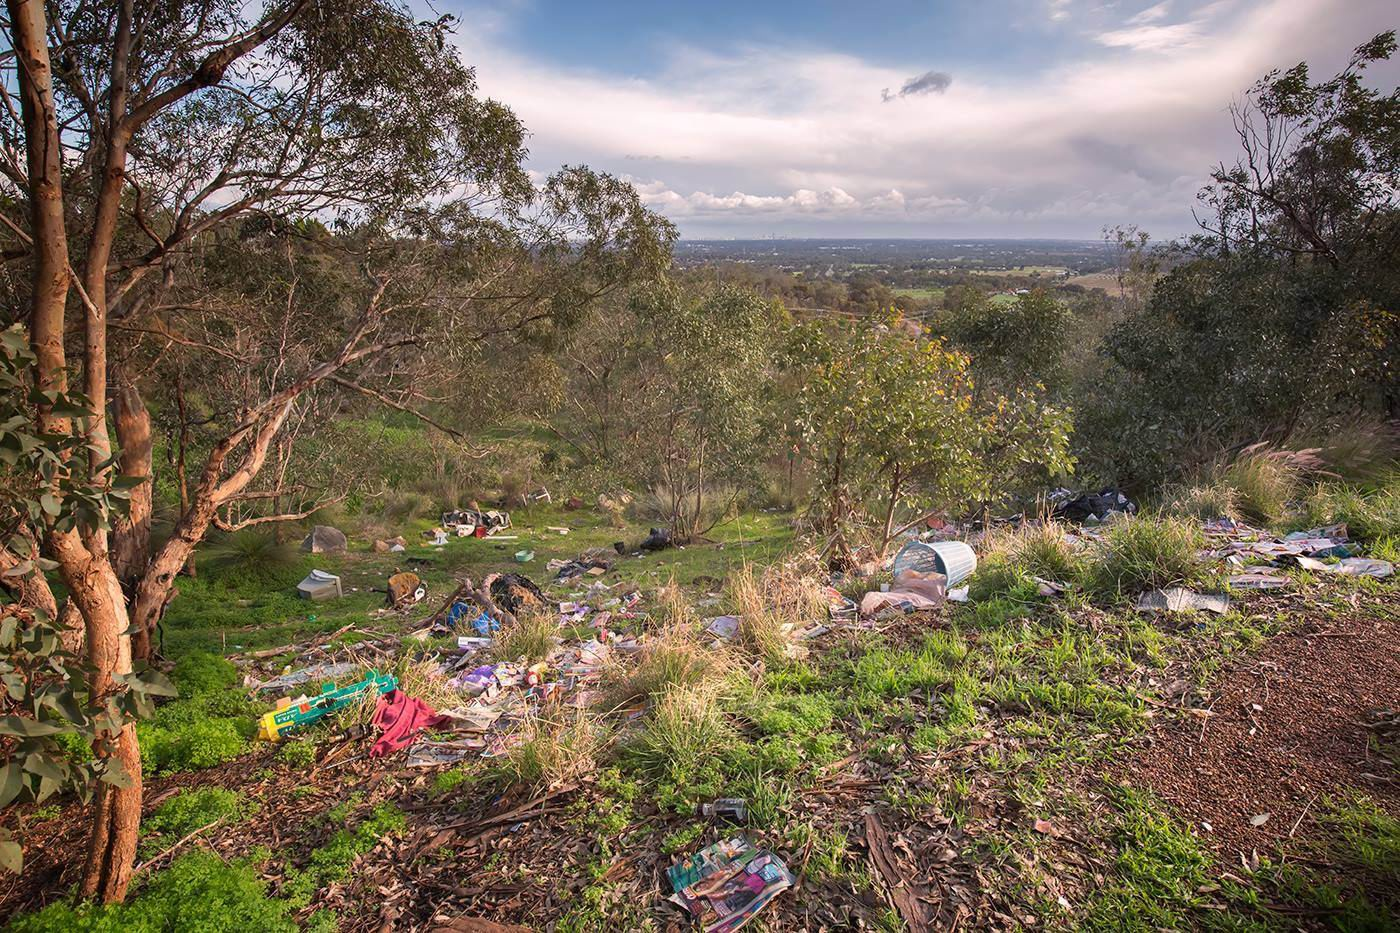 Red Hill rubbish sight a 'disgrace'